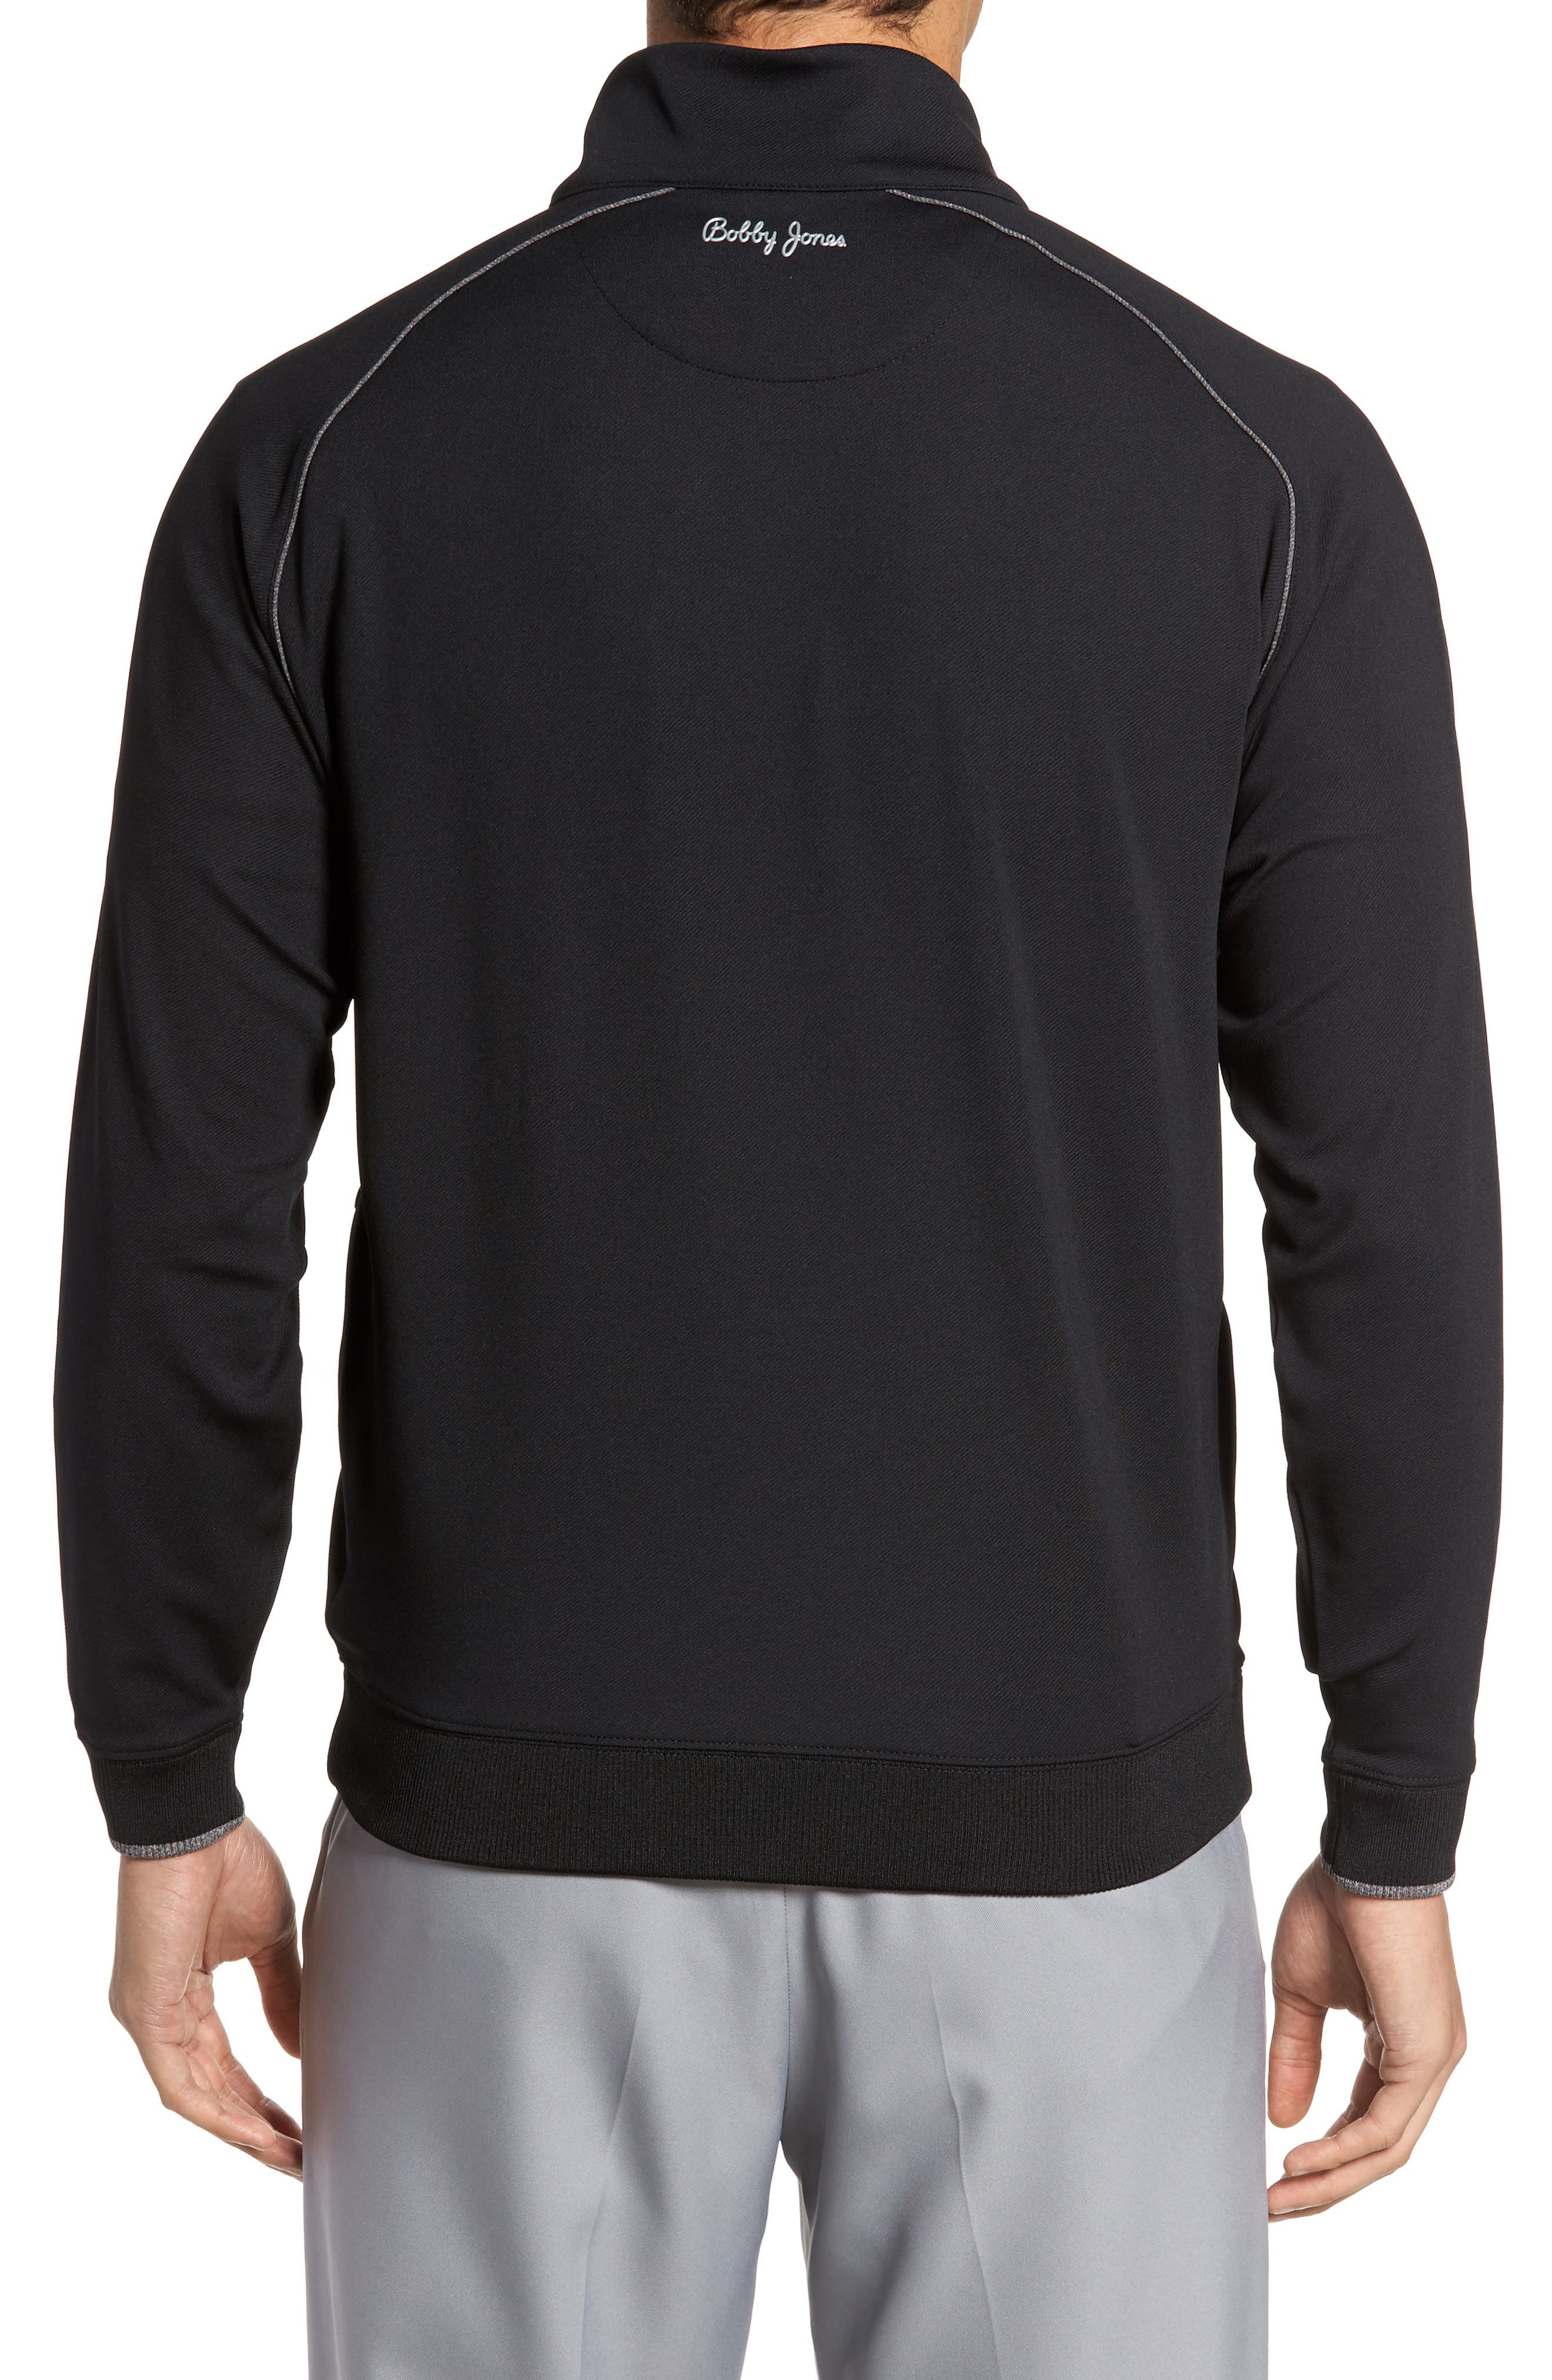 XH20 Banded Bottom Pullover,                             Alternate thumbnail 2, color,                             001